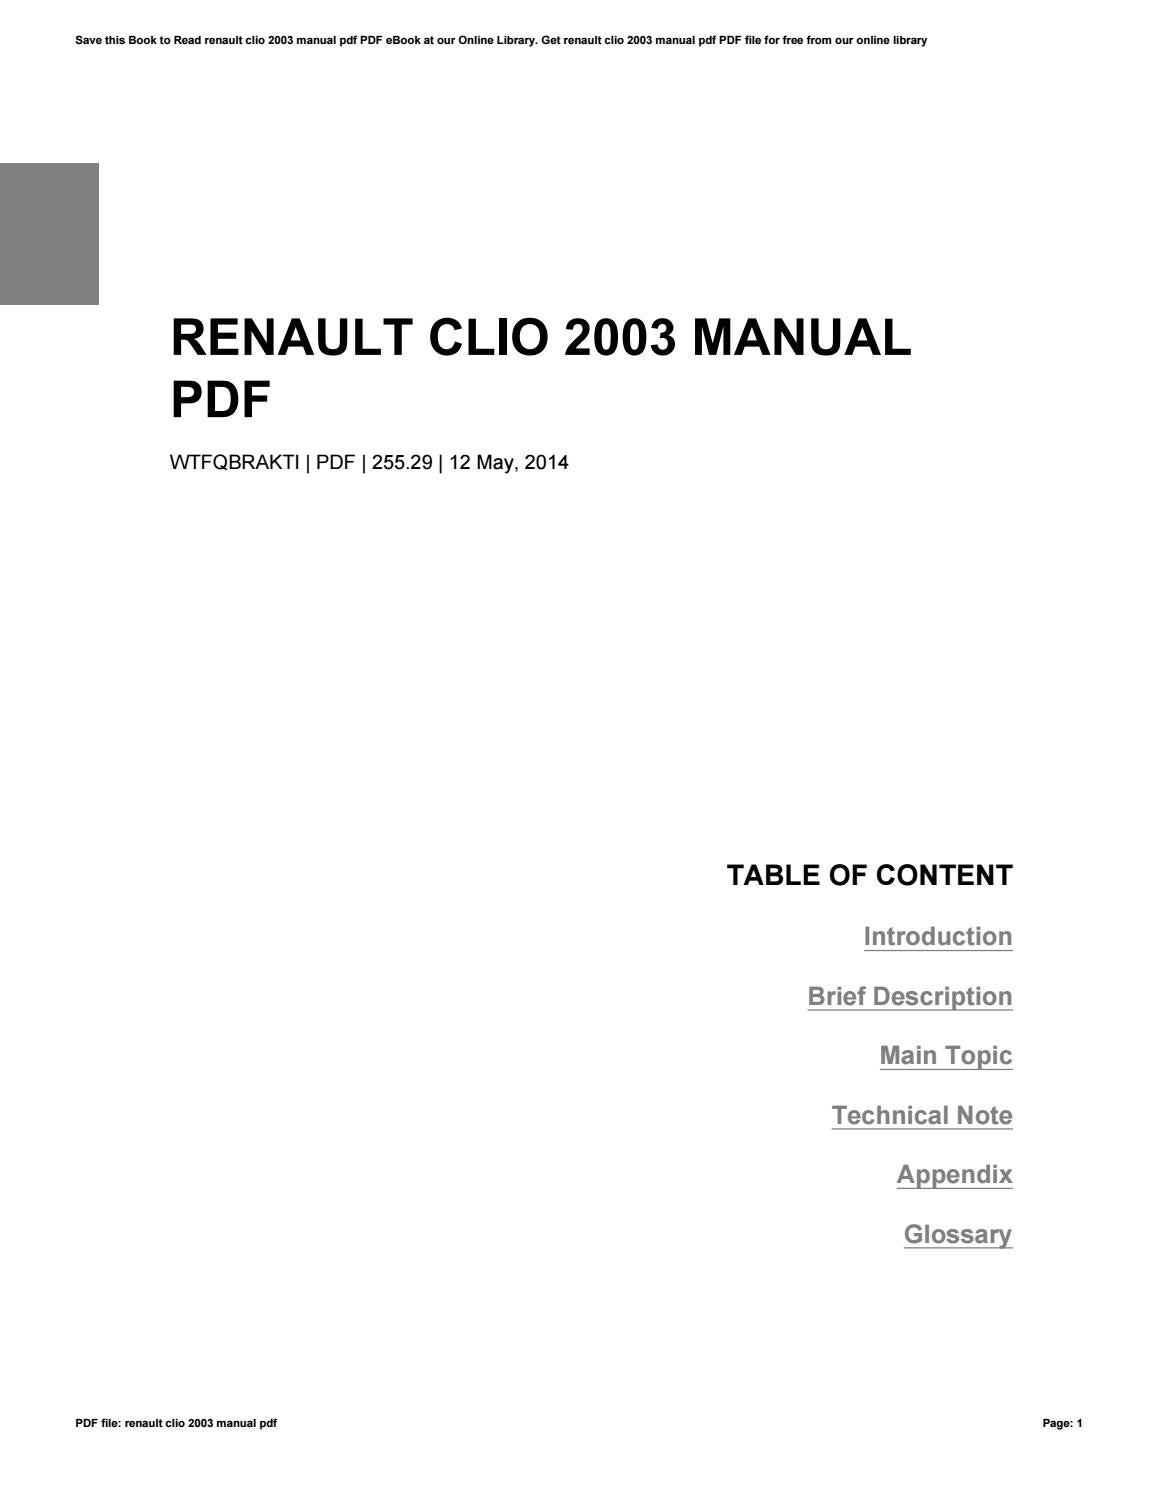 Renault Clio 2003 Manual Pdf By Theo Issuu